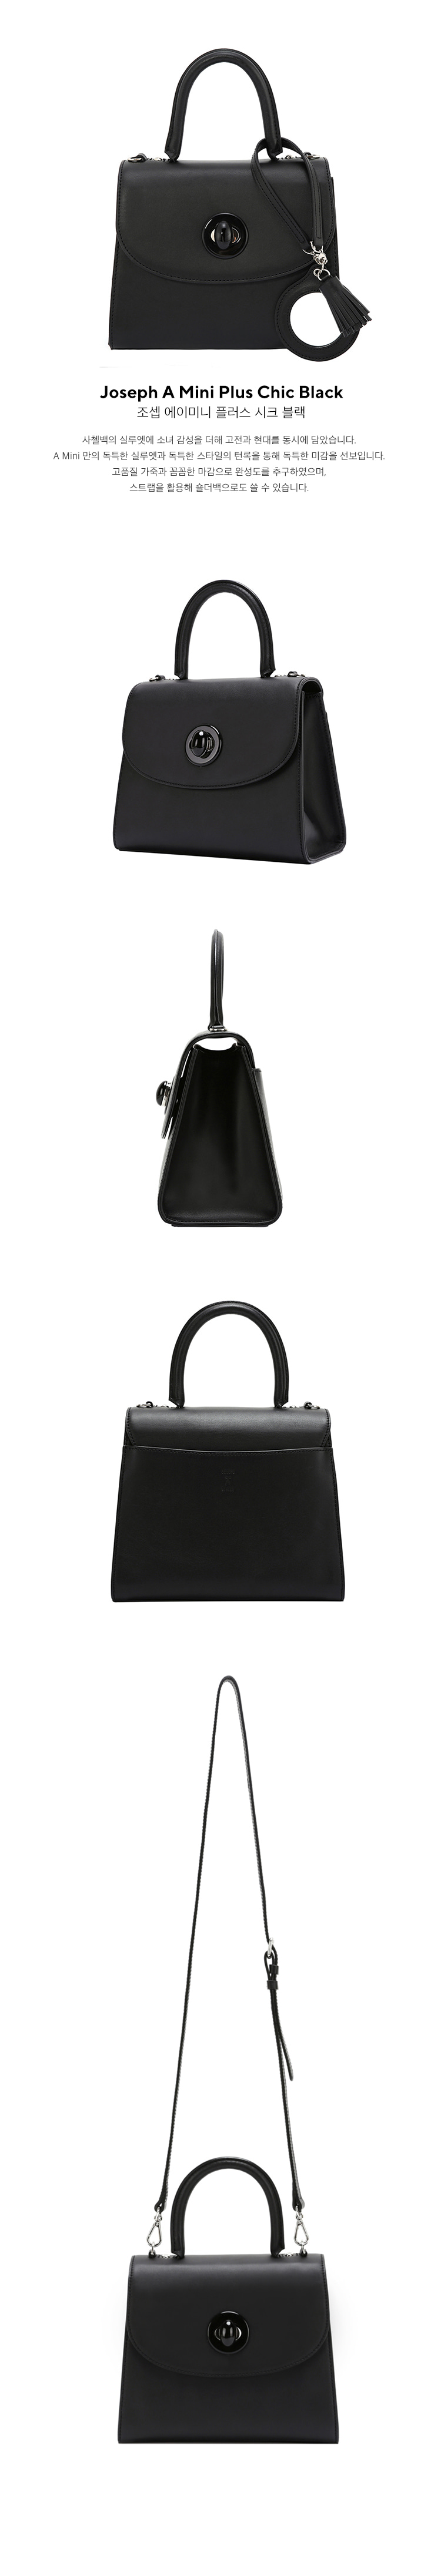 조셉앤스테이시(JOSEPH&STACEY) Joseph A Mini Plus  Chic Black(+Mirror Charm)